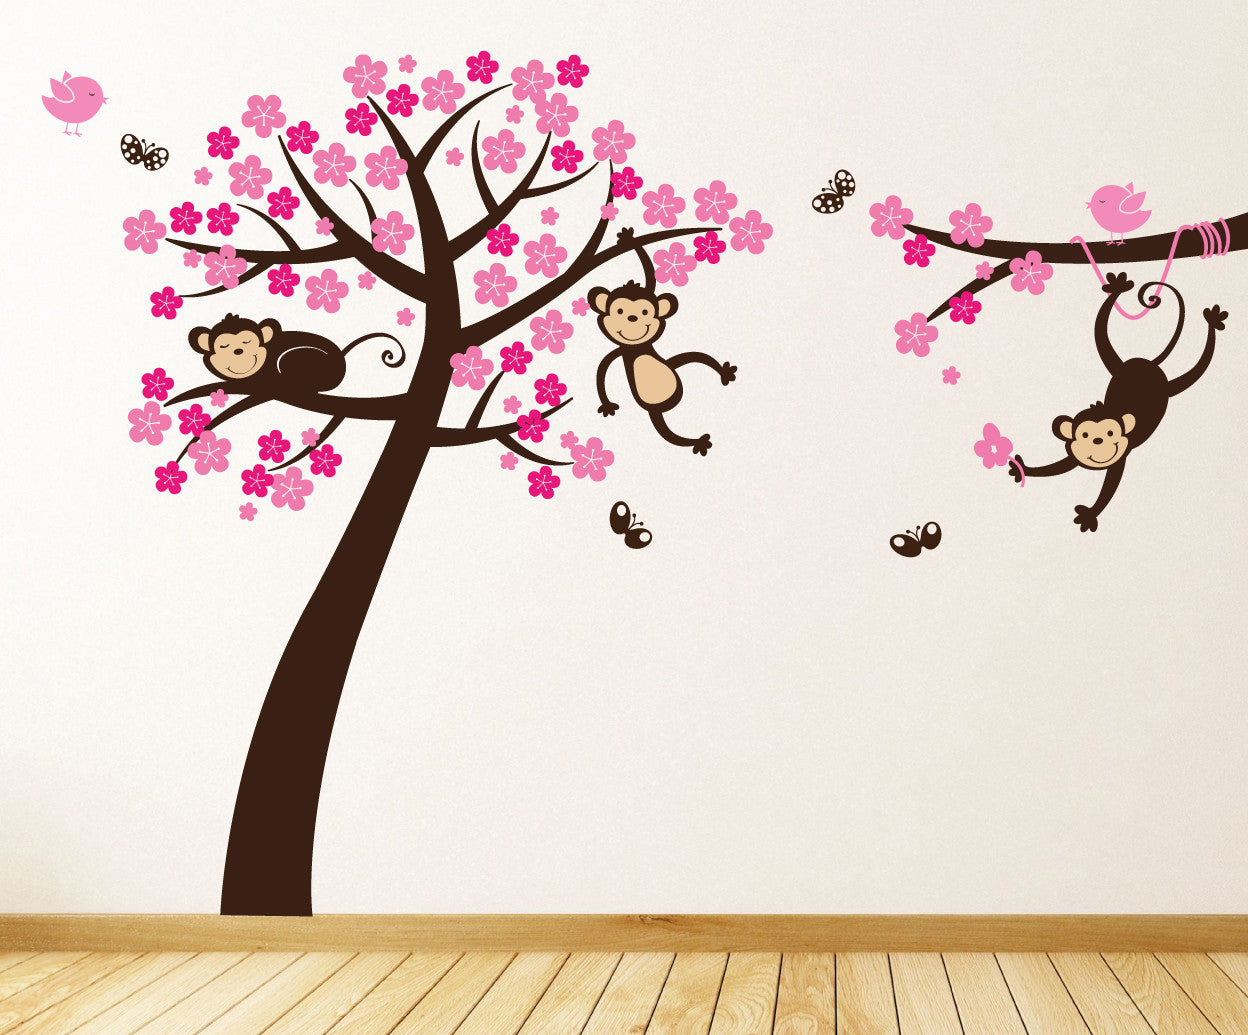 Monkey blossom tree wall stickers parkins interiors monkey blossom tree wall stickers amipublicfo Image collections